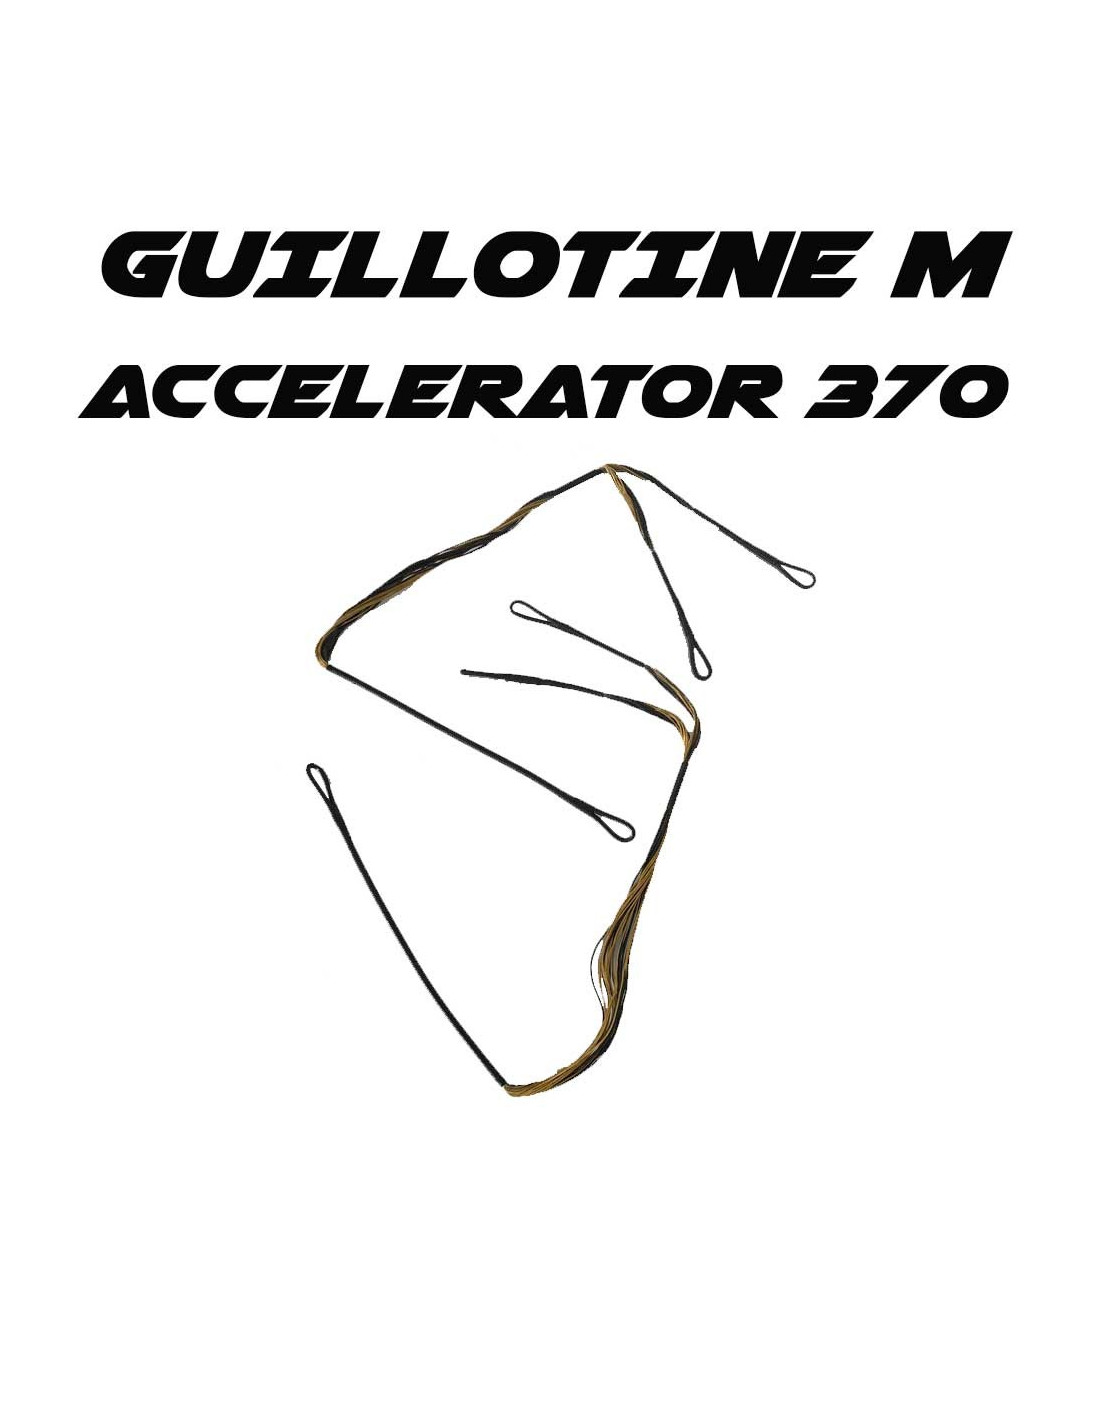 Replacement cable for EK Archery Guillotine-M and